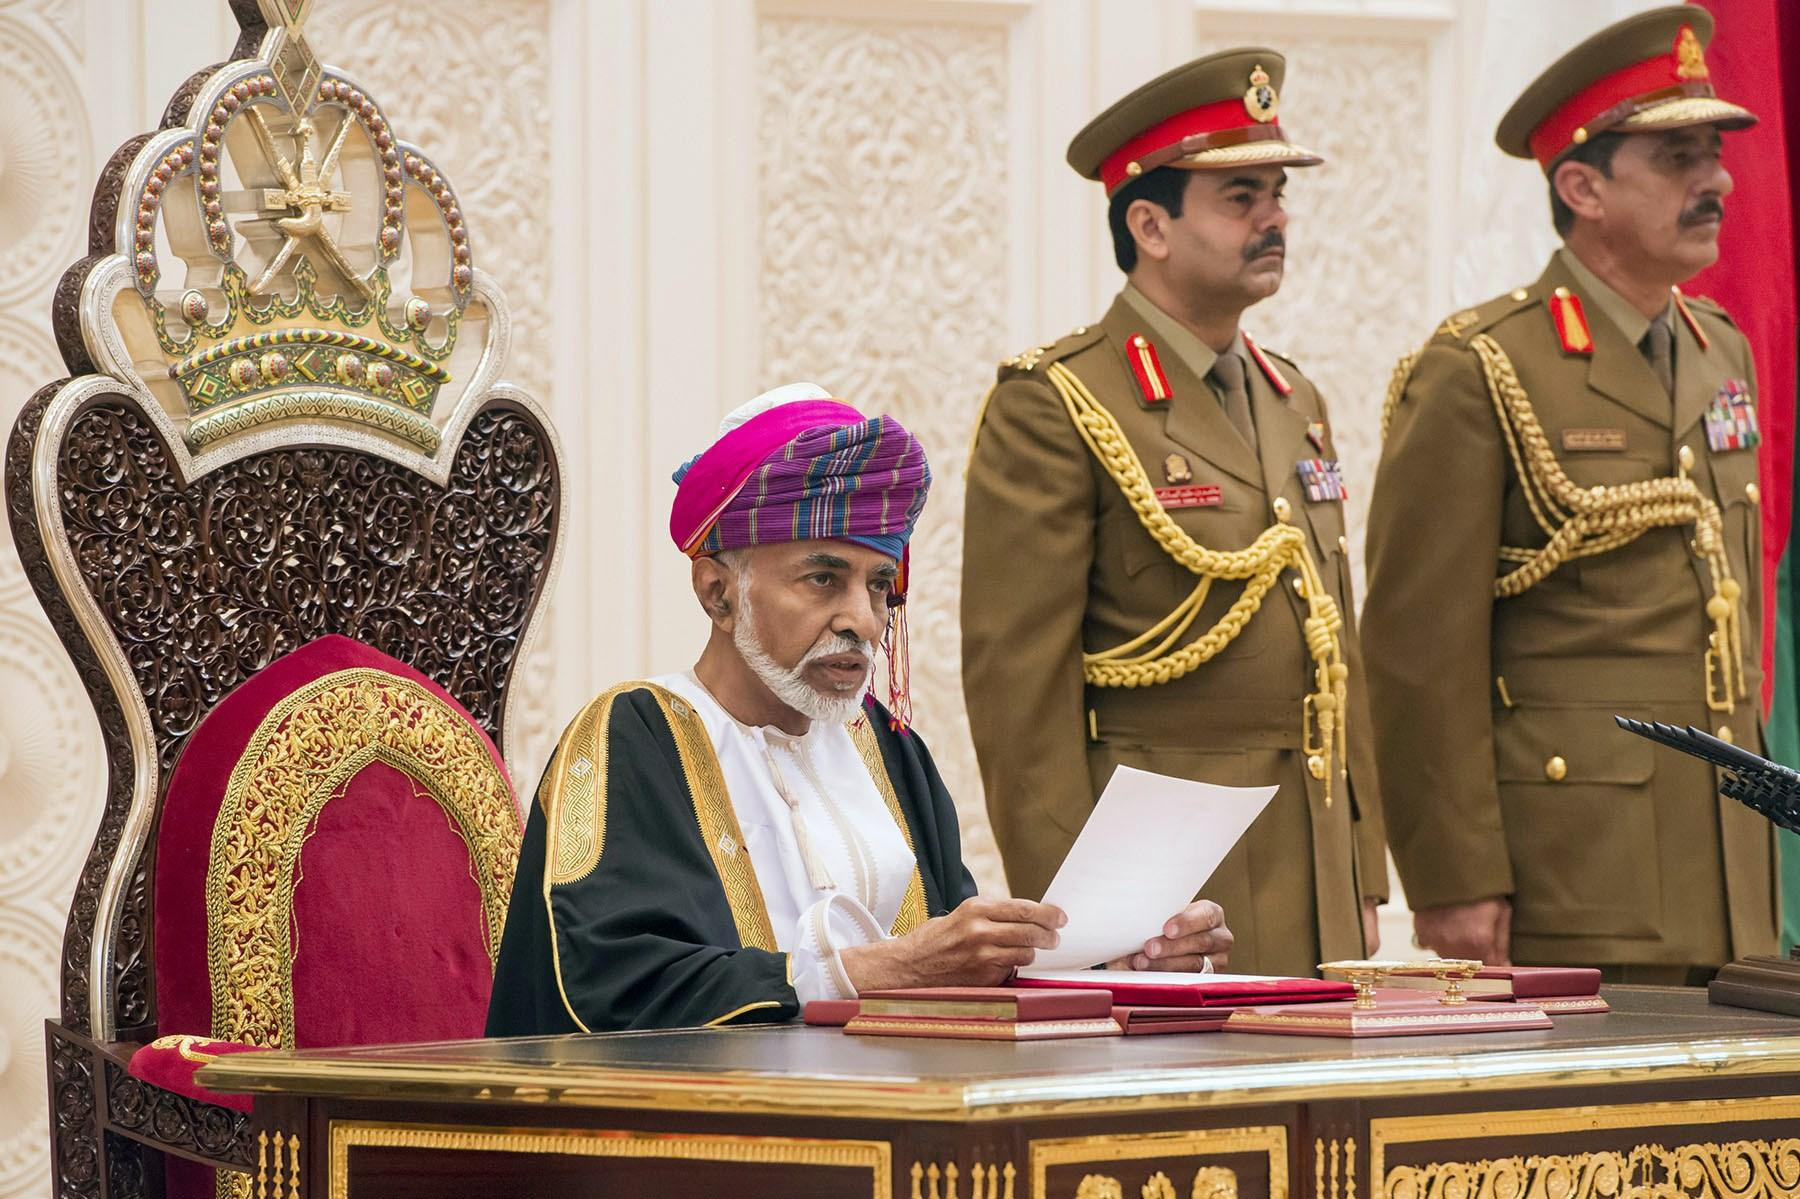 The sultan of oman homosexual relationships